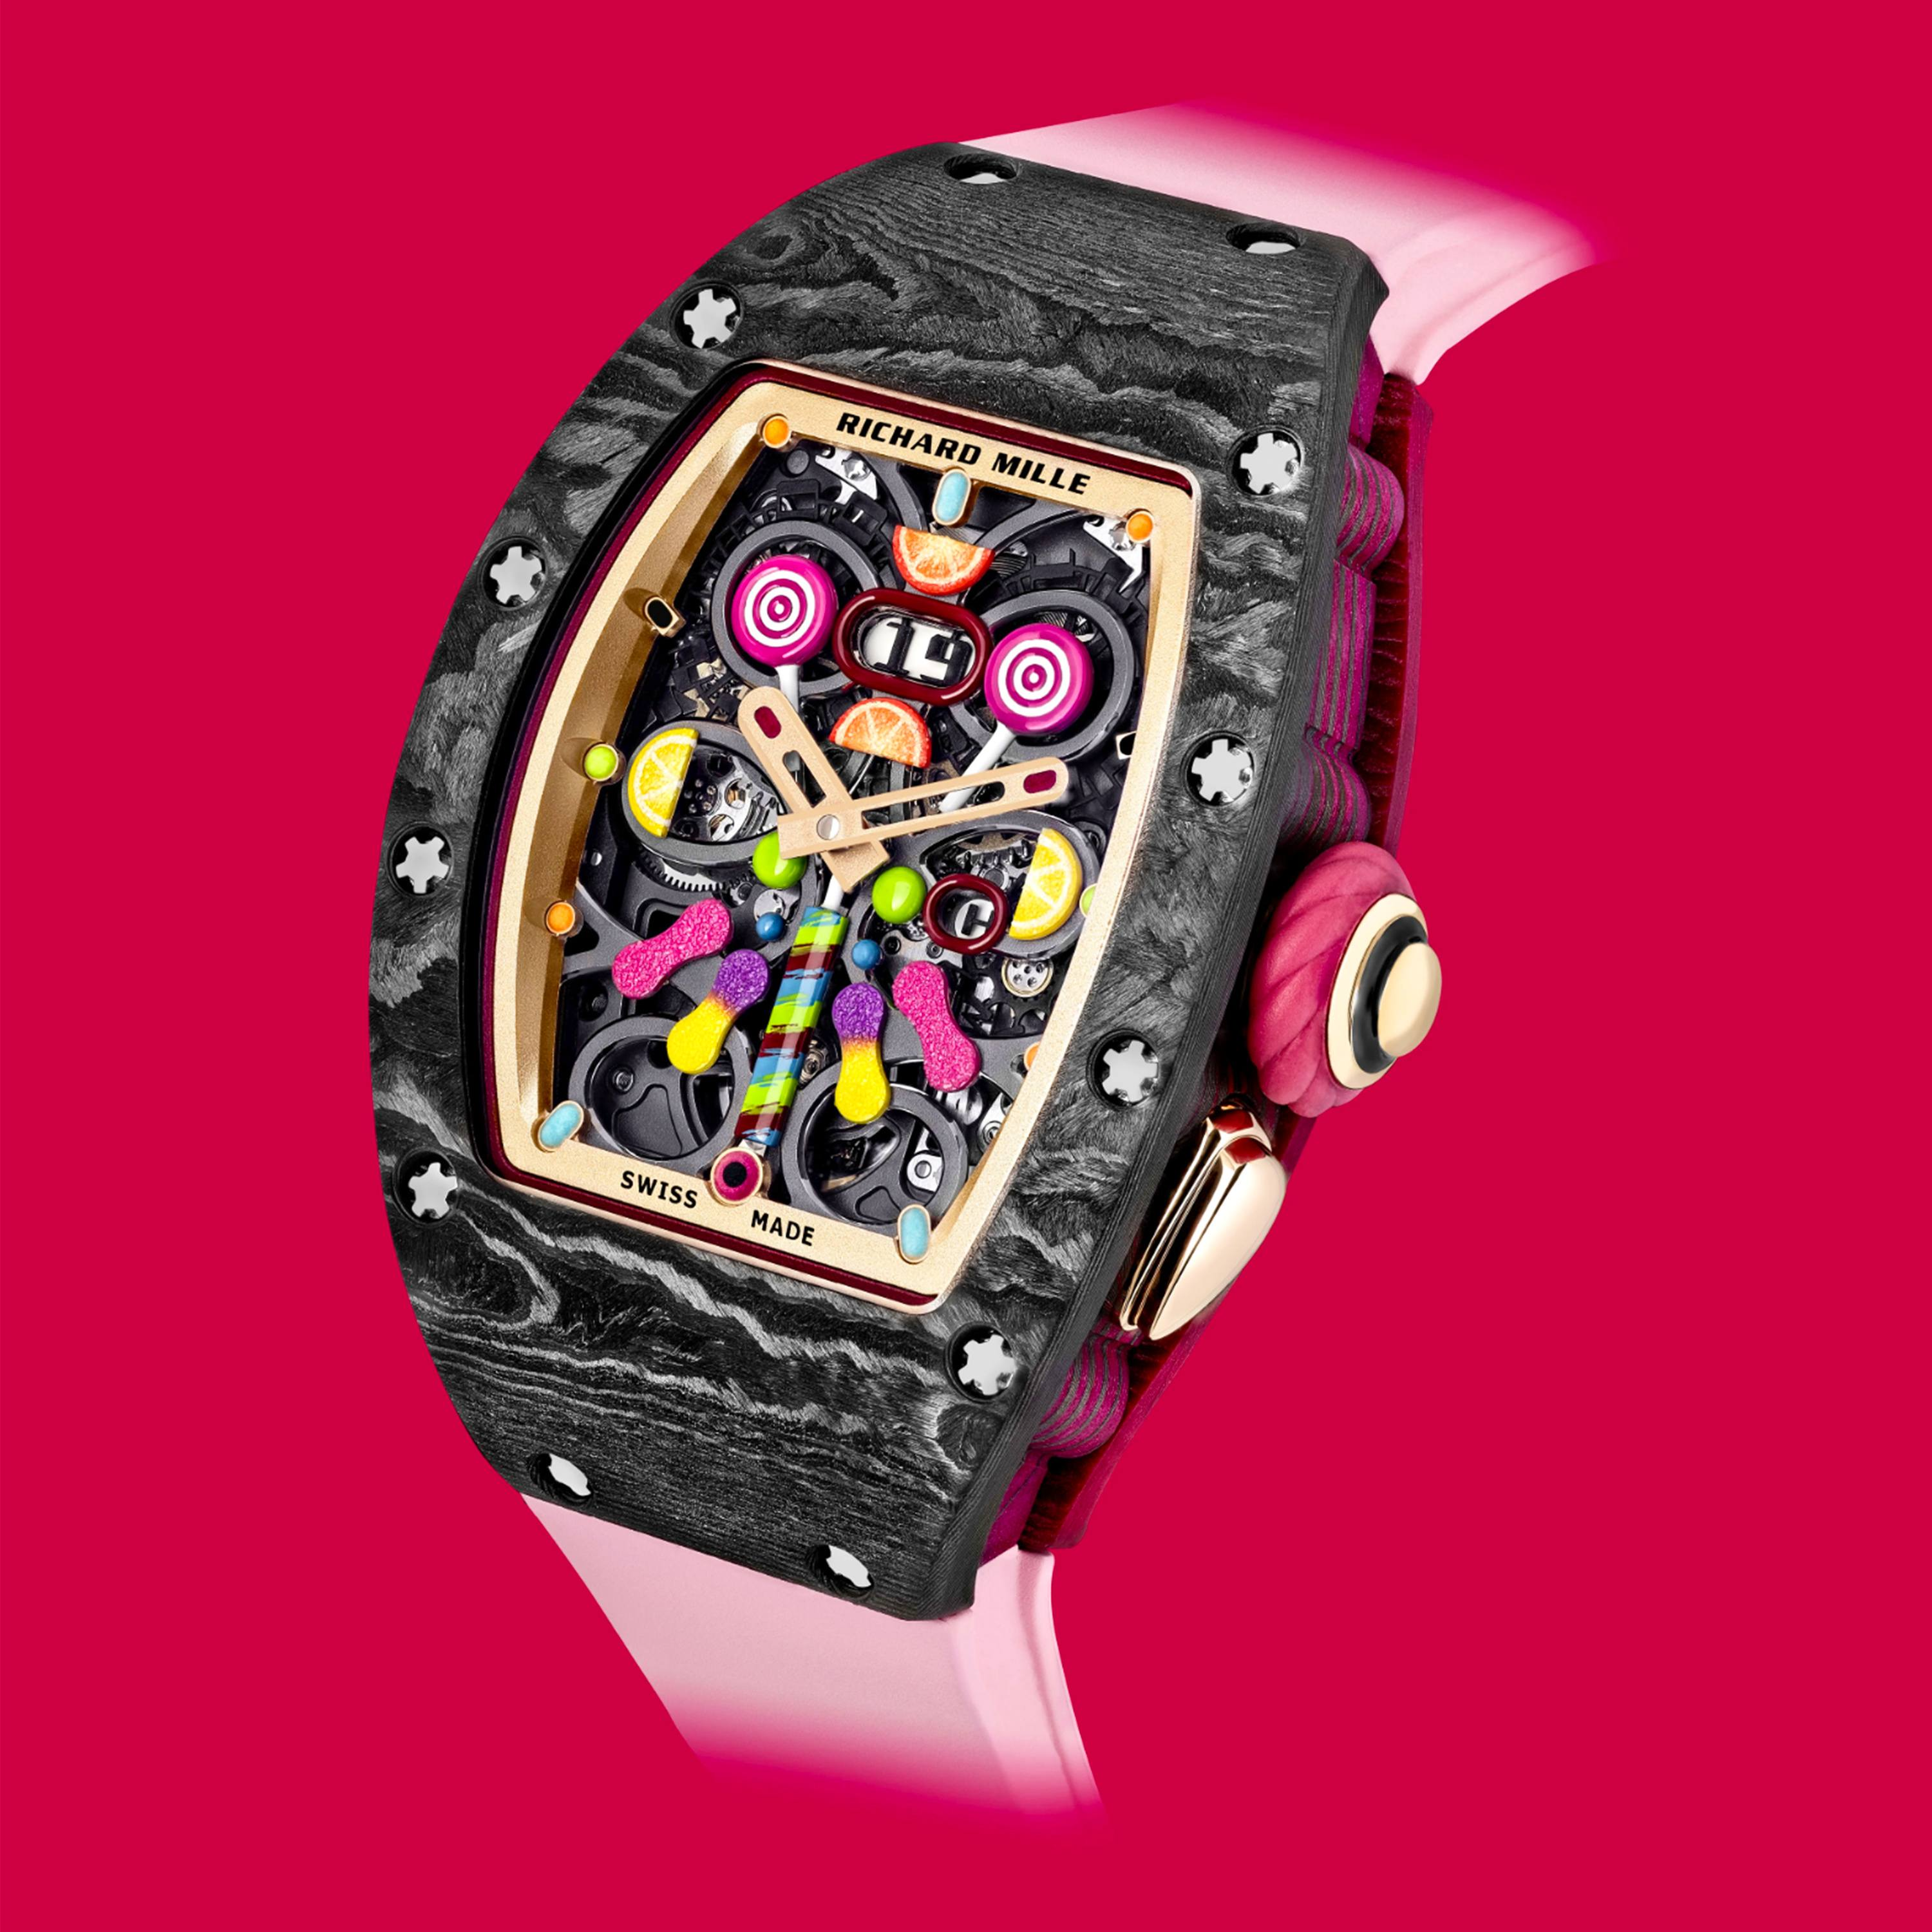 Richard Mille Bonbon Collection featuring the multi-colored RM 37-01 Automatic Cerise timepiece